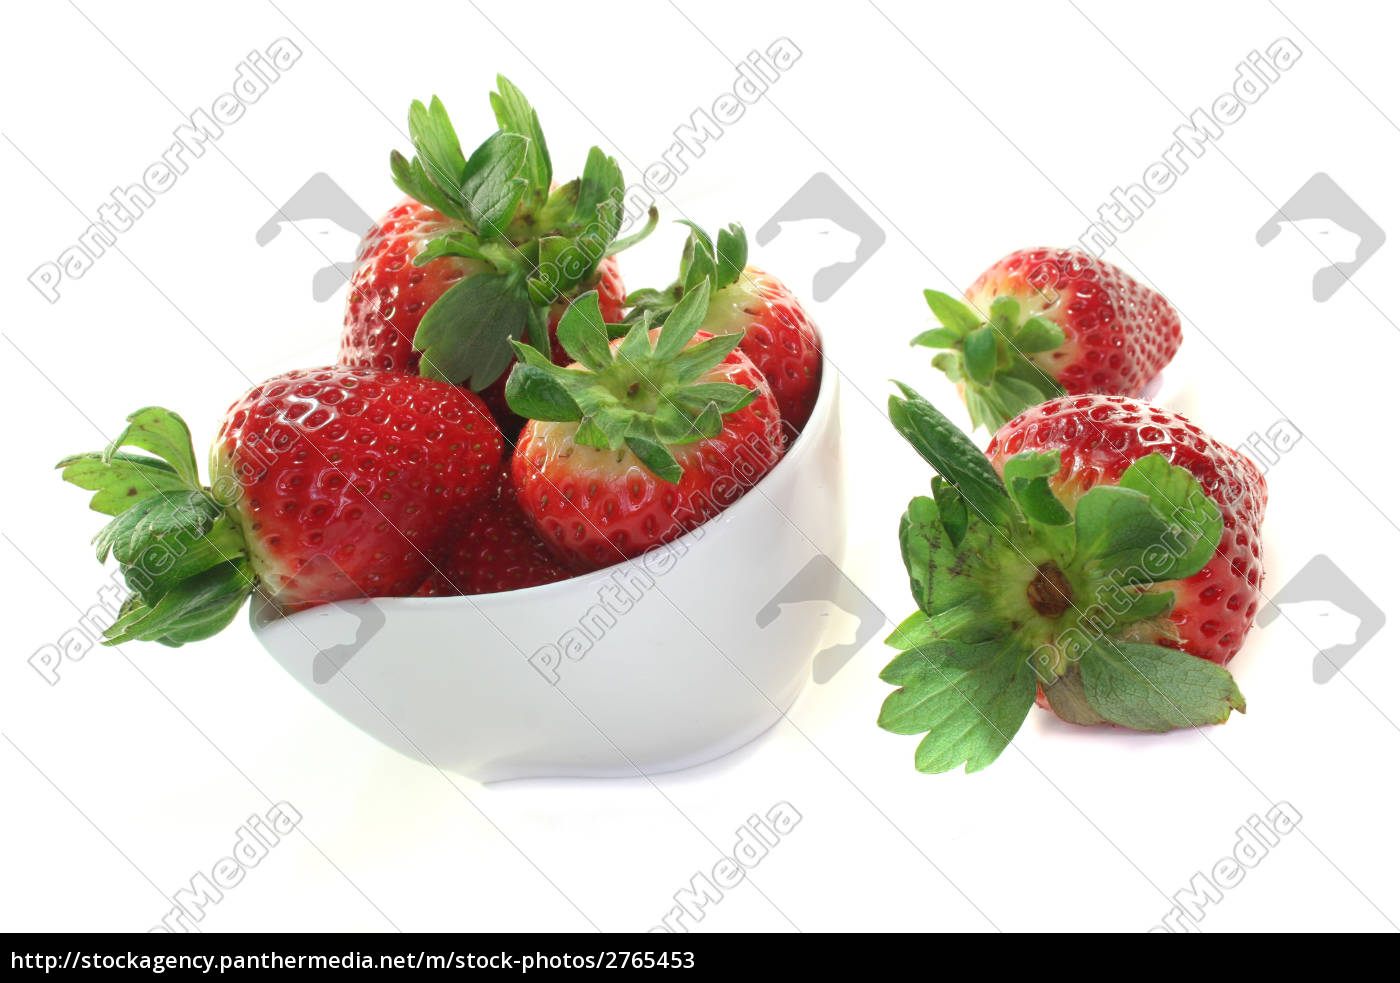 strawberries - 2765453